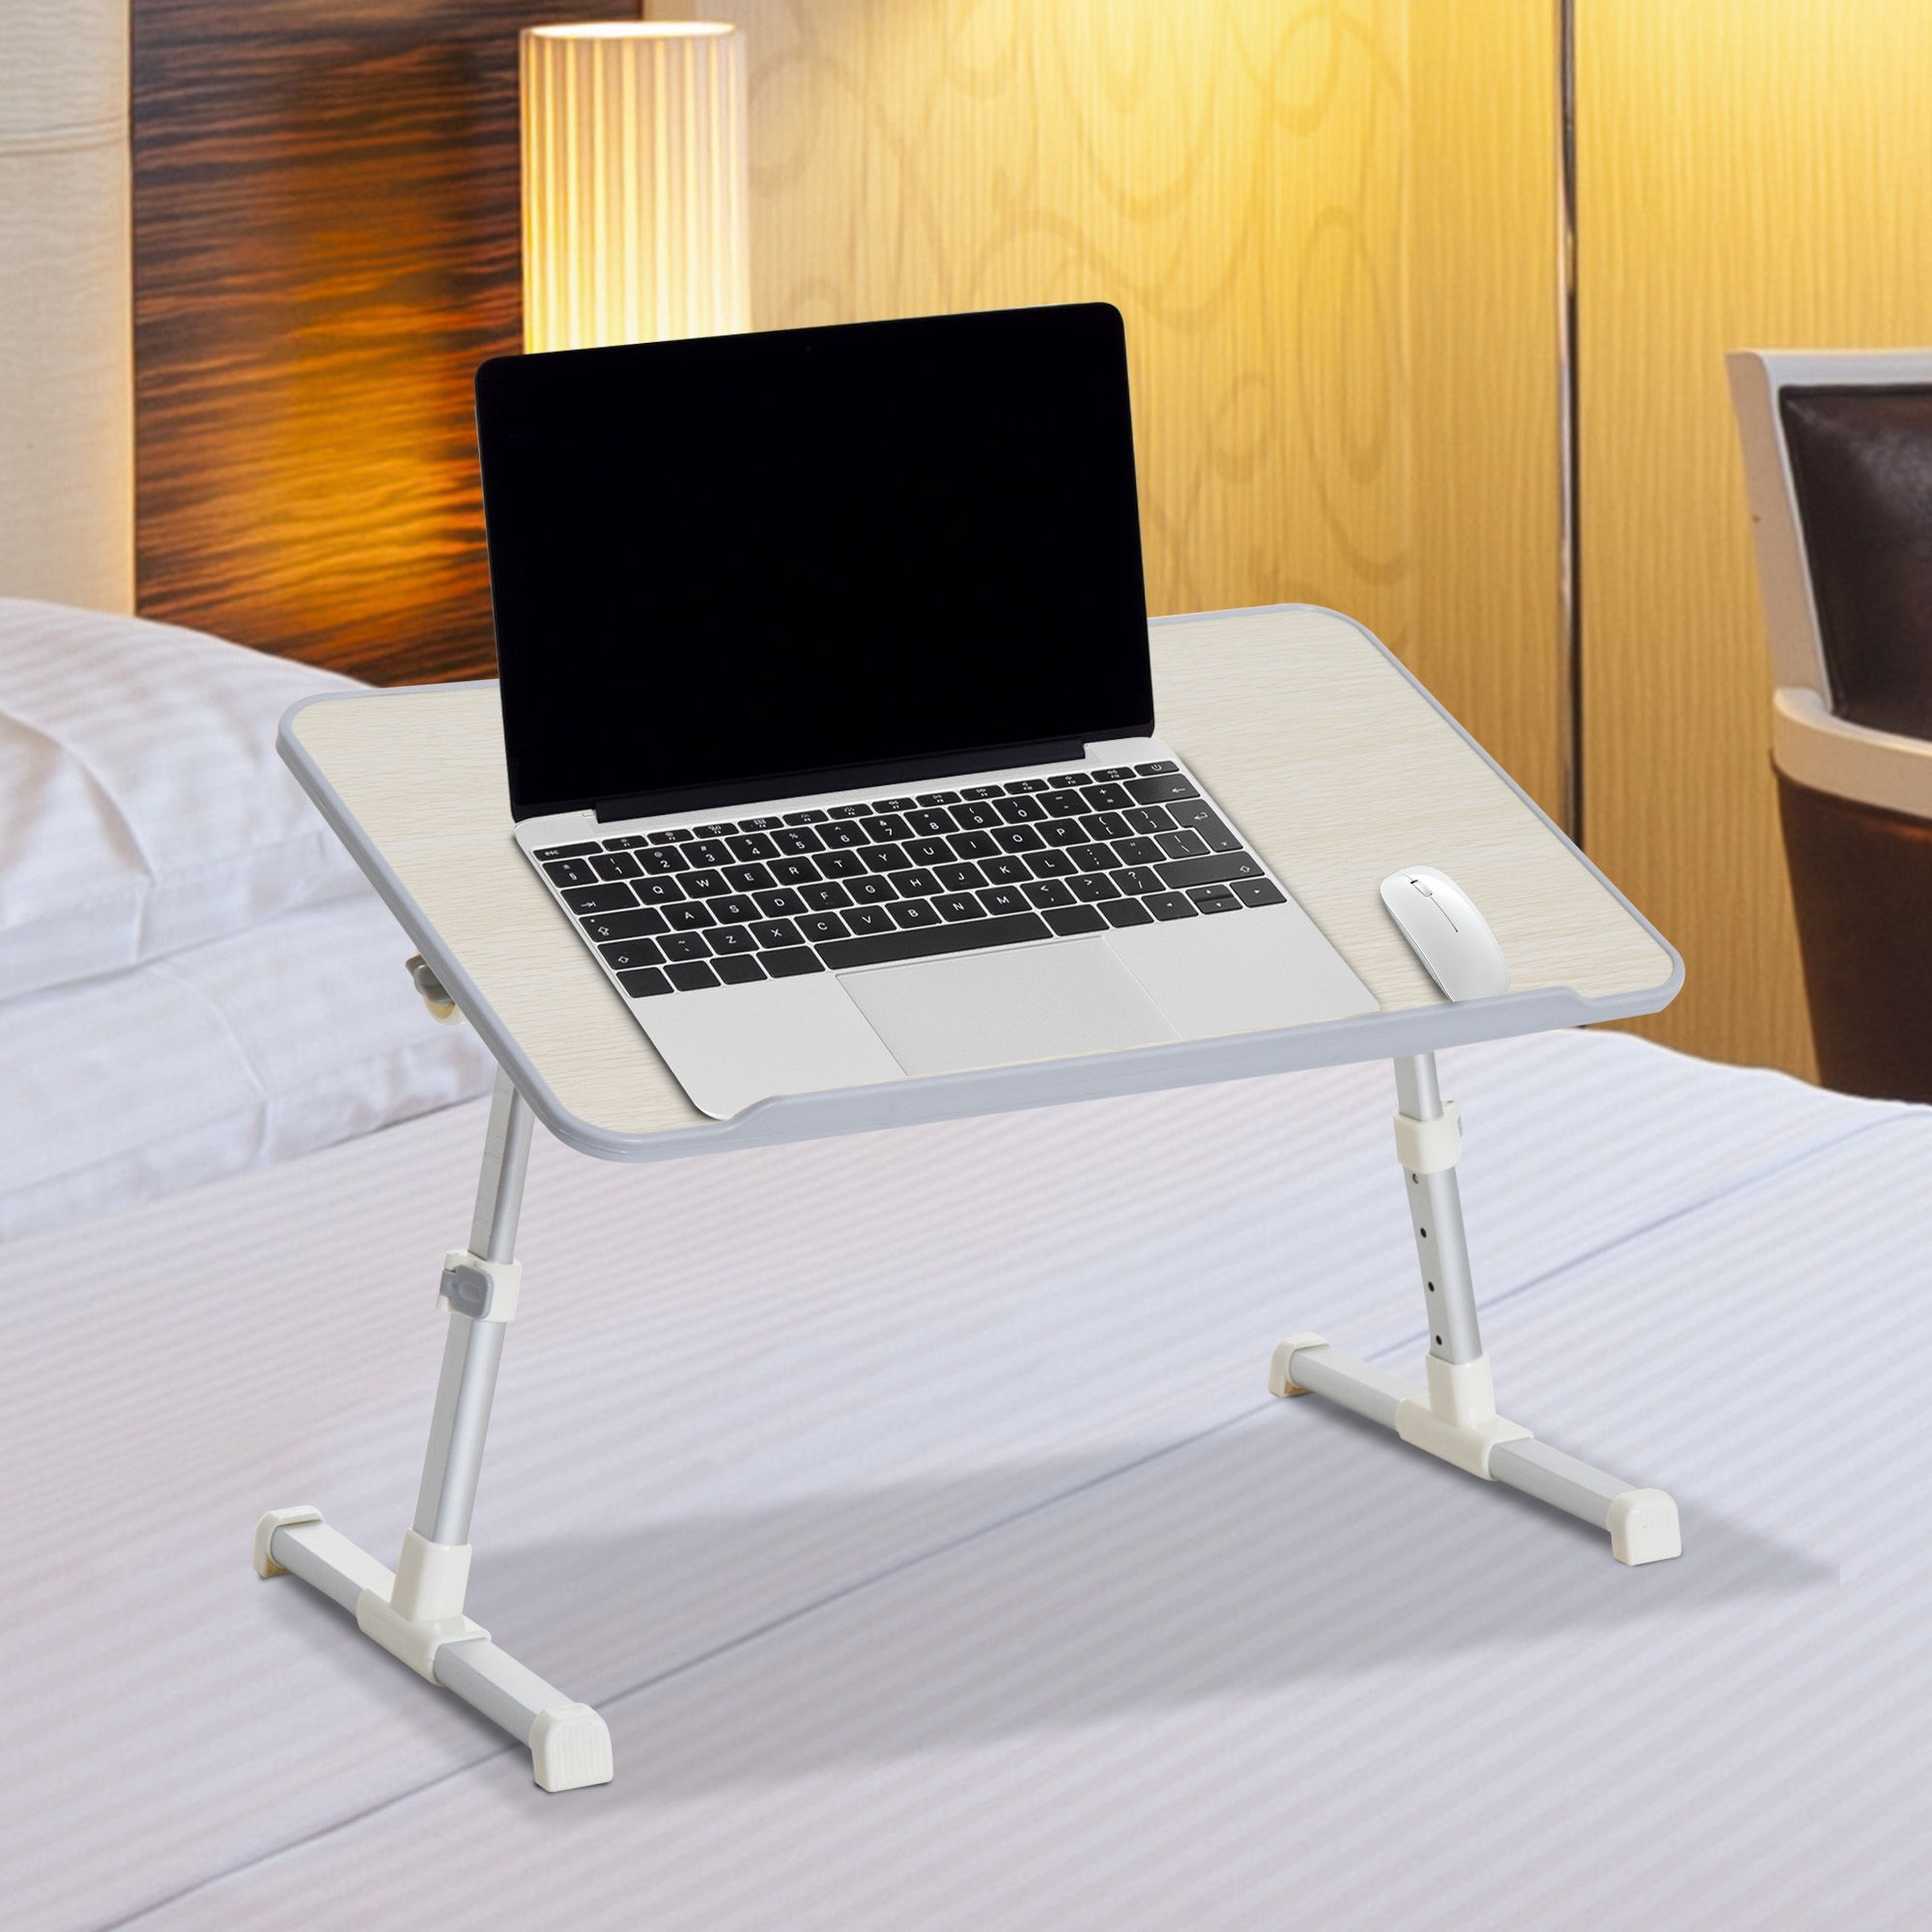 Eur22 90 Homcom Table De Lit Pour Ordinateur Portable Pliable